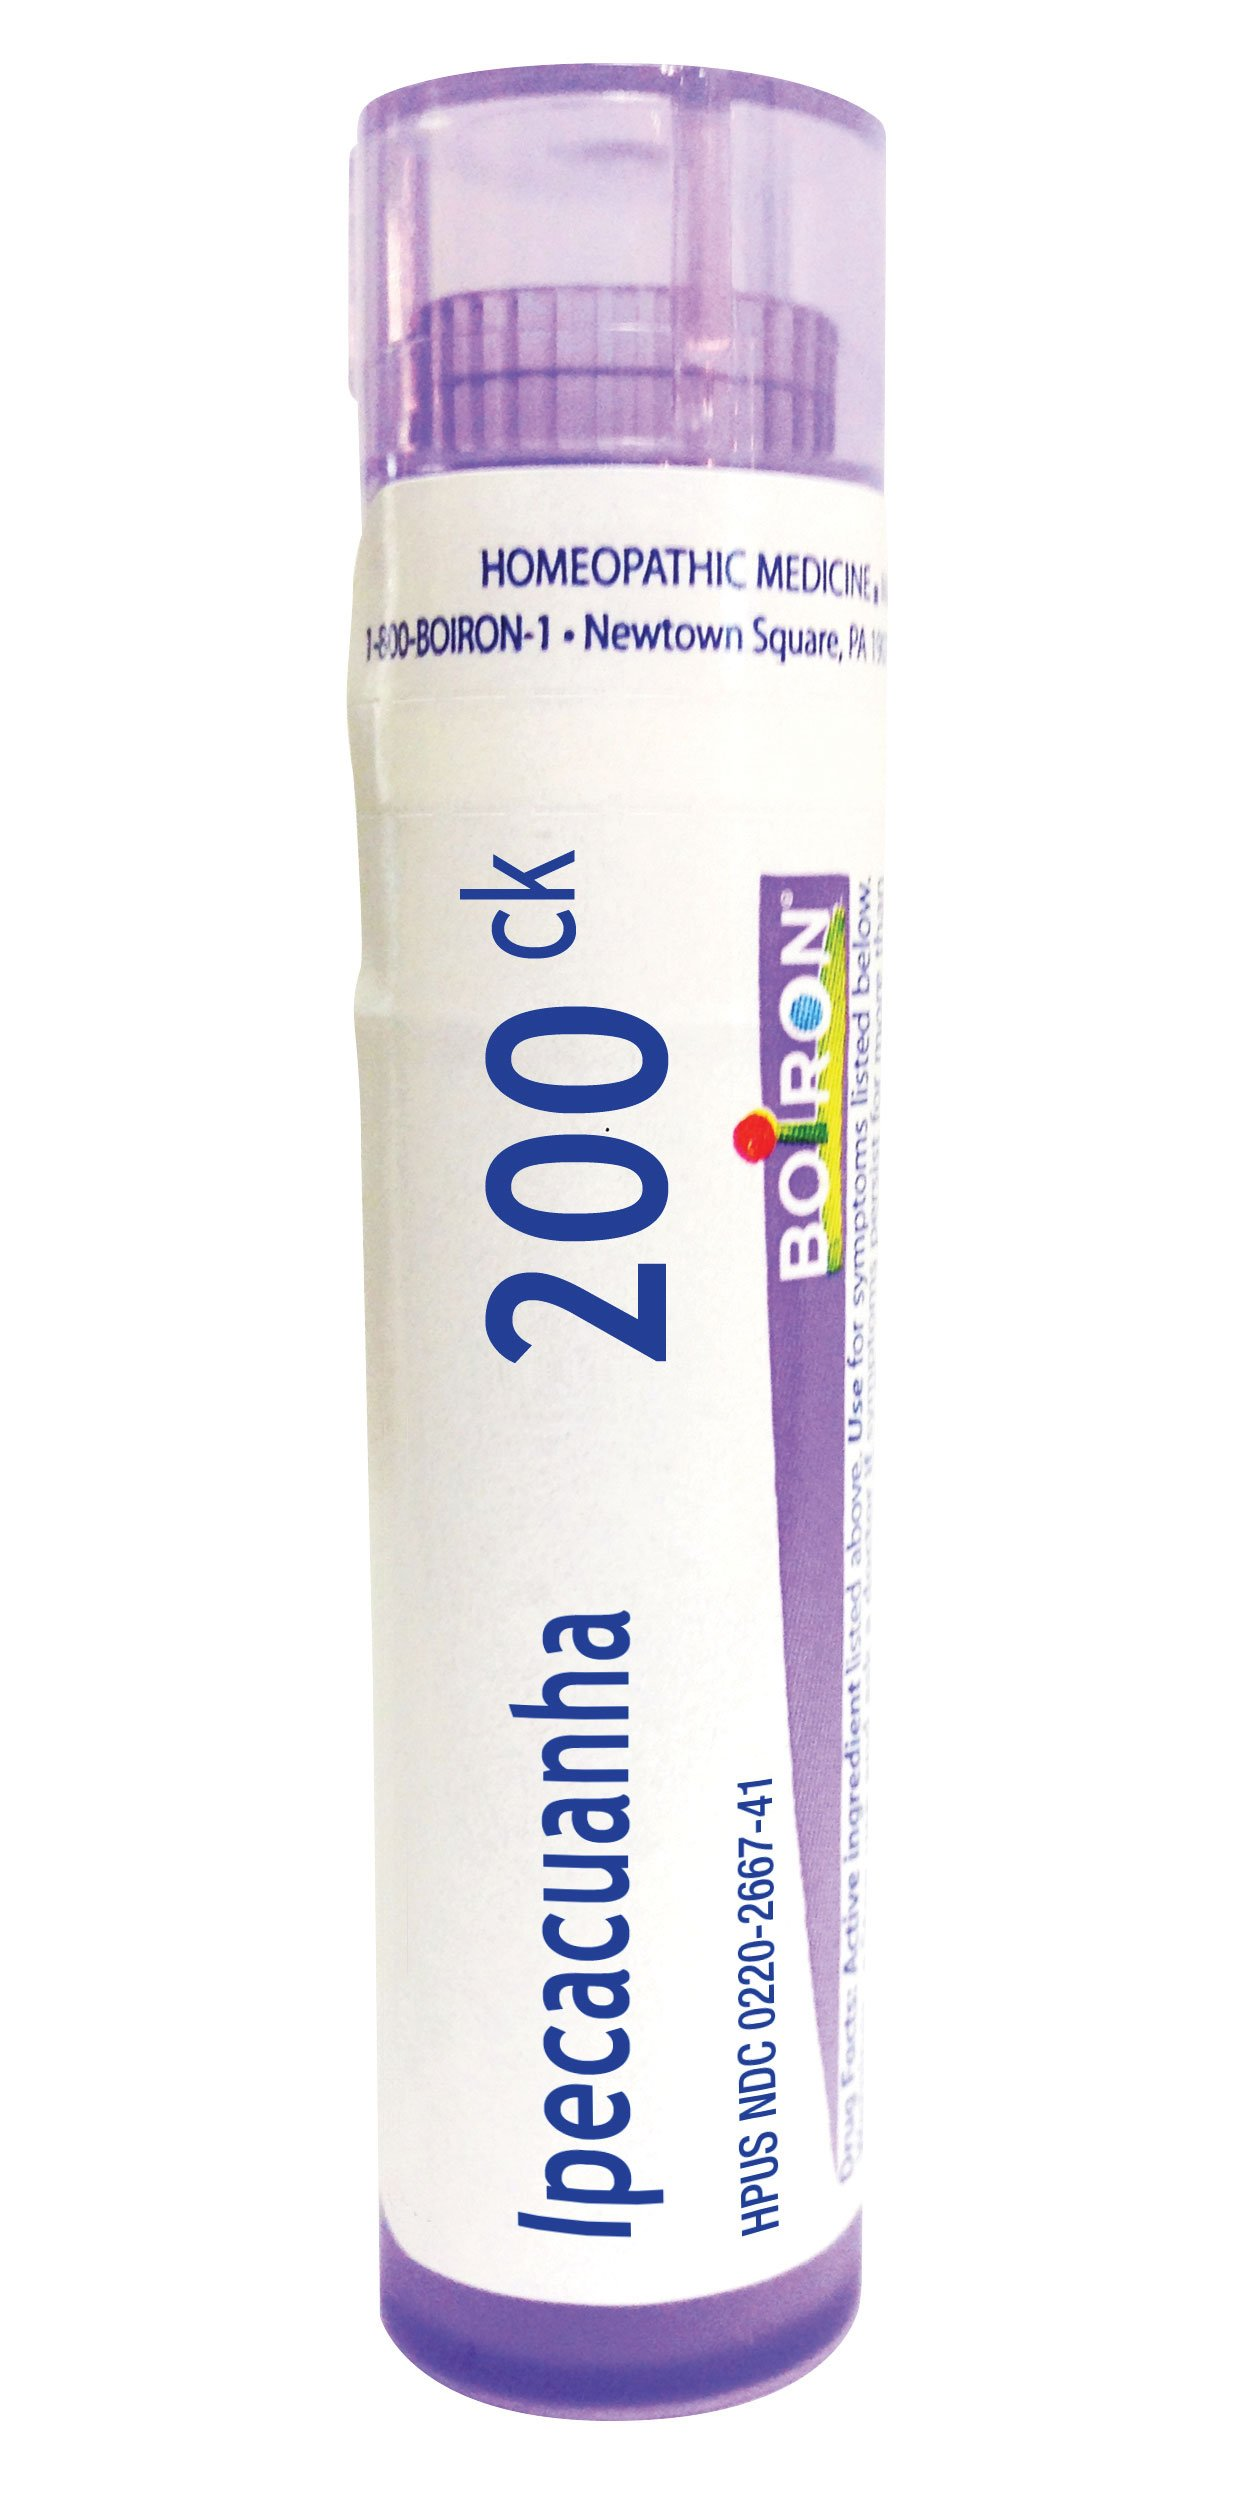 Boiron Ipecacuanha 200C, 80 Pellets, Homeopathic Medicine for Nausea